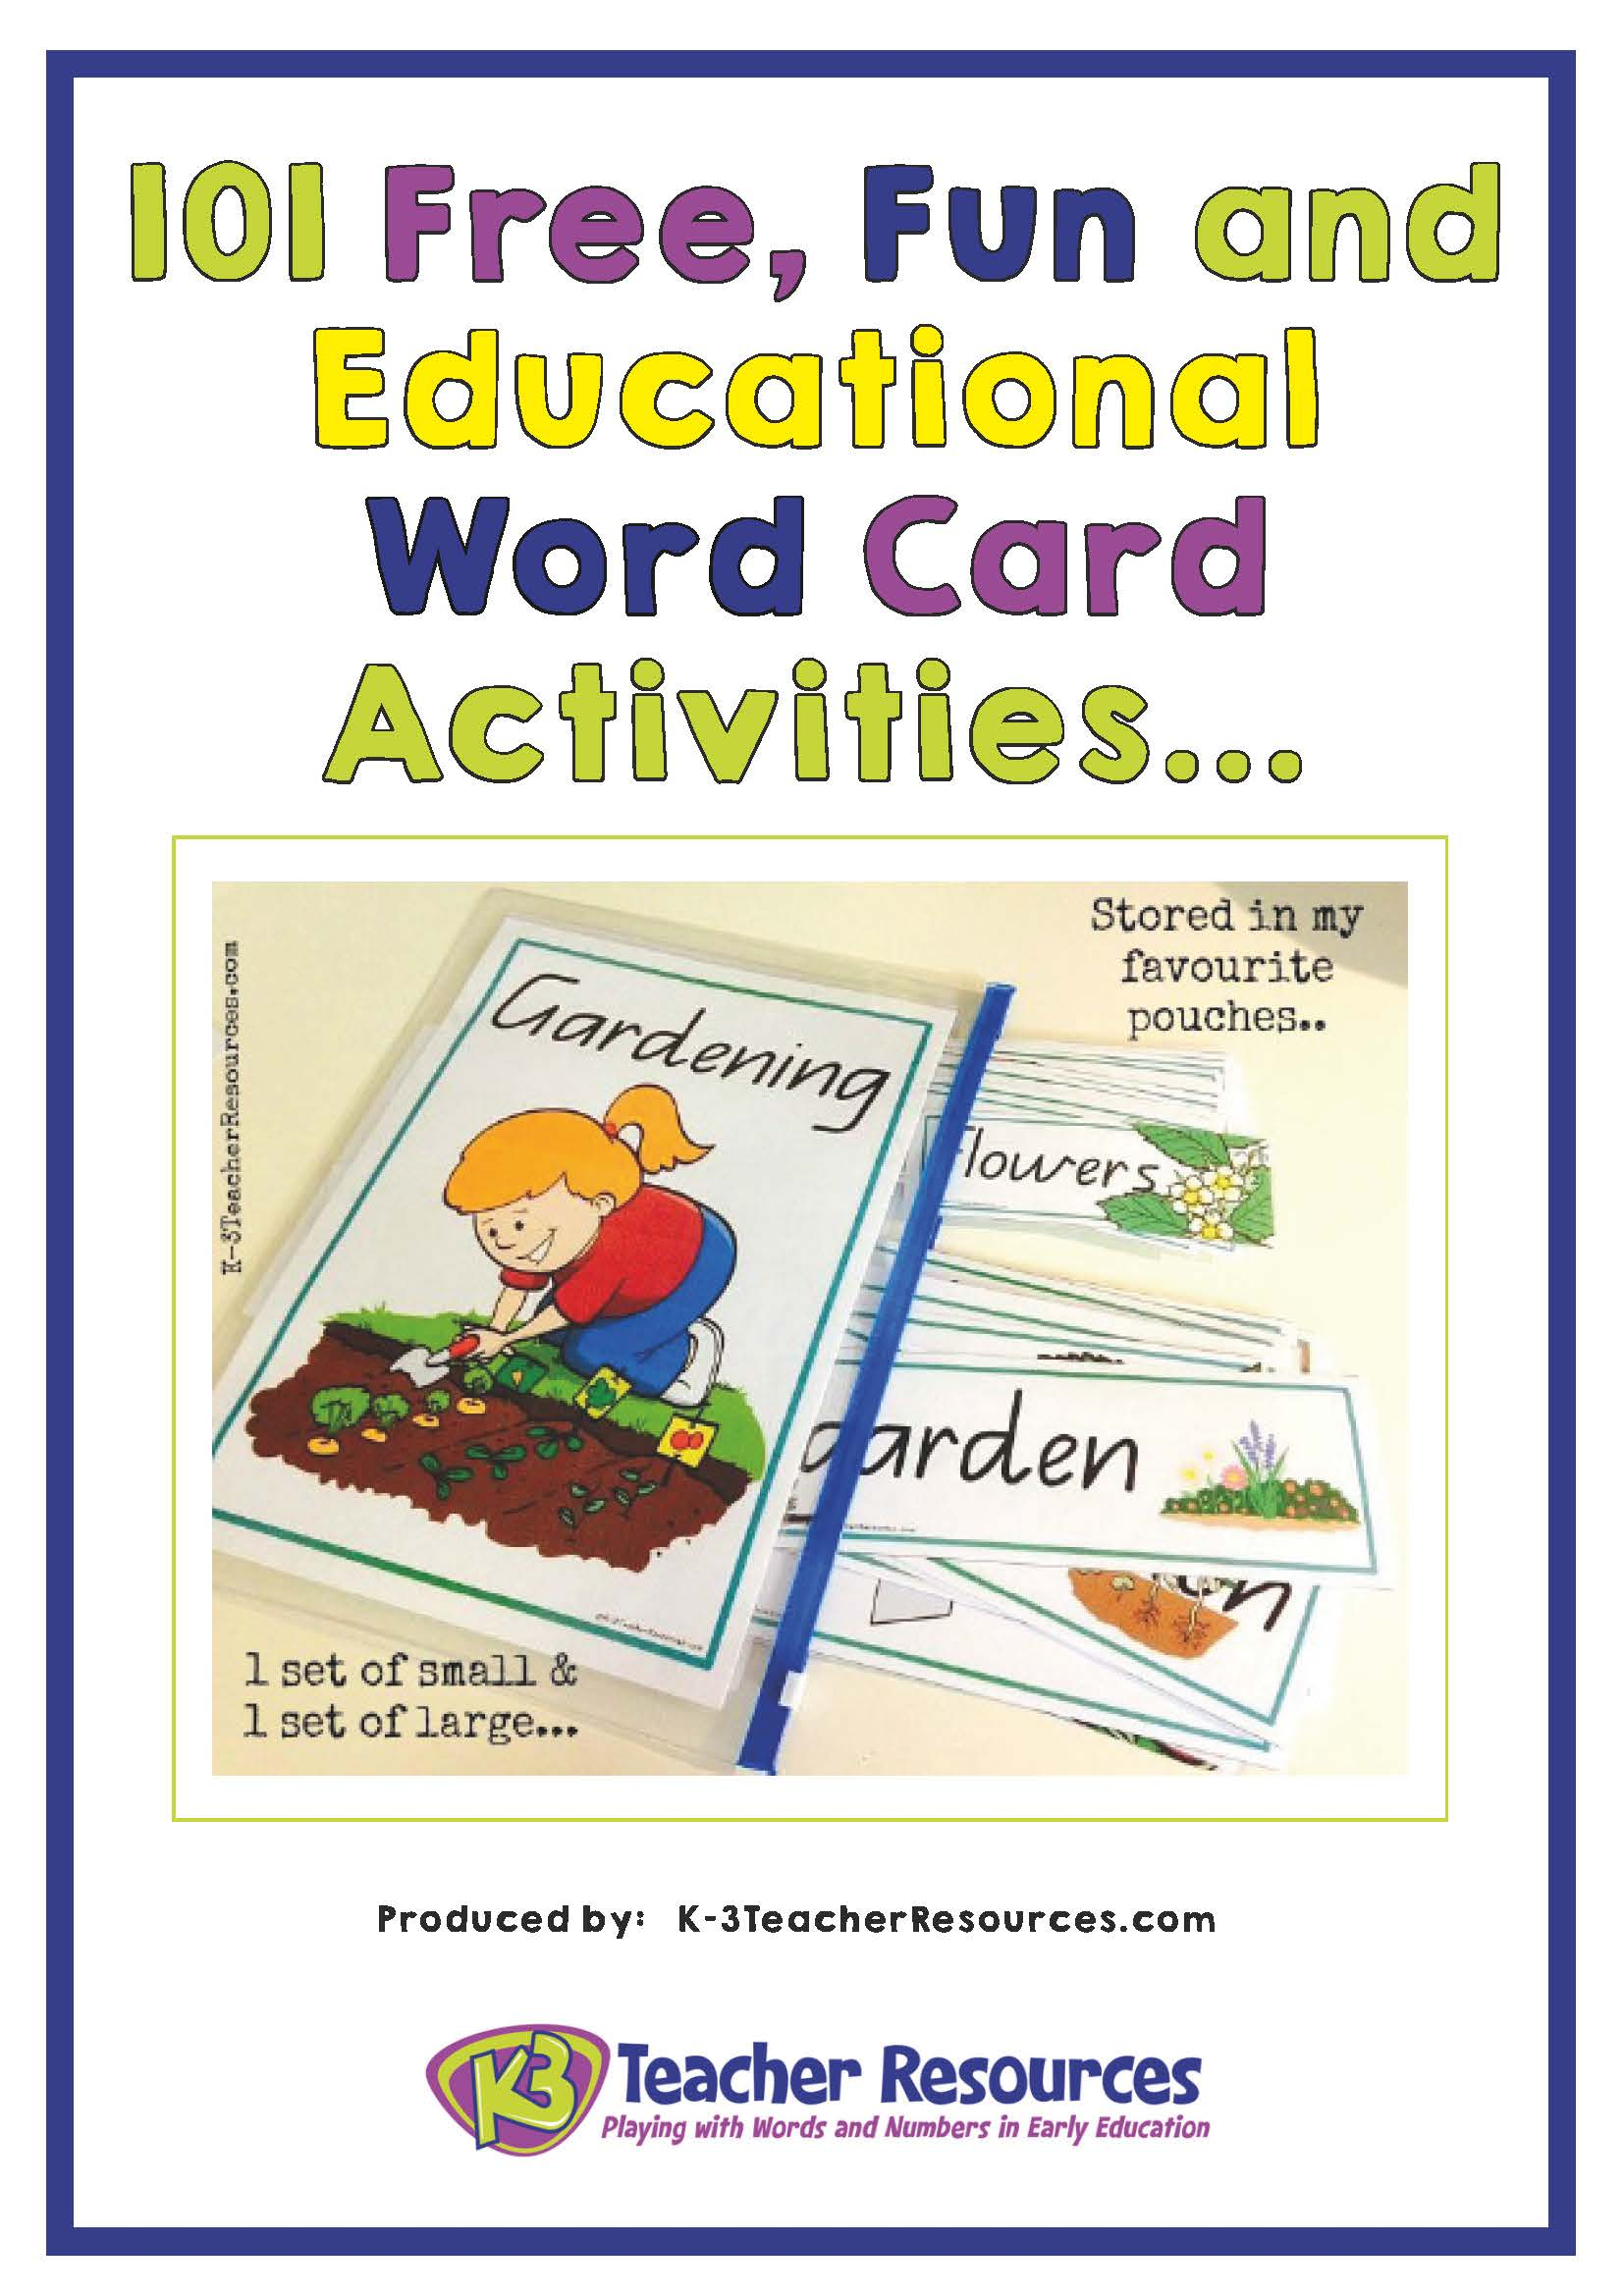 101 Fun And Educational Vocabulary Word Card Activities